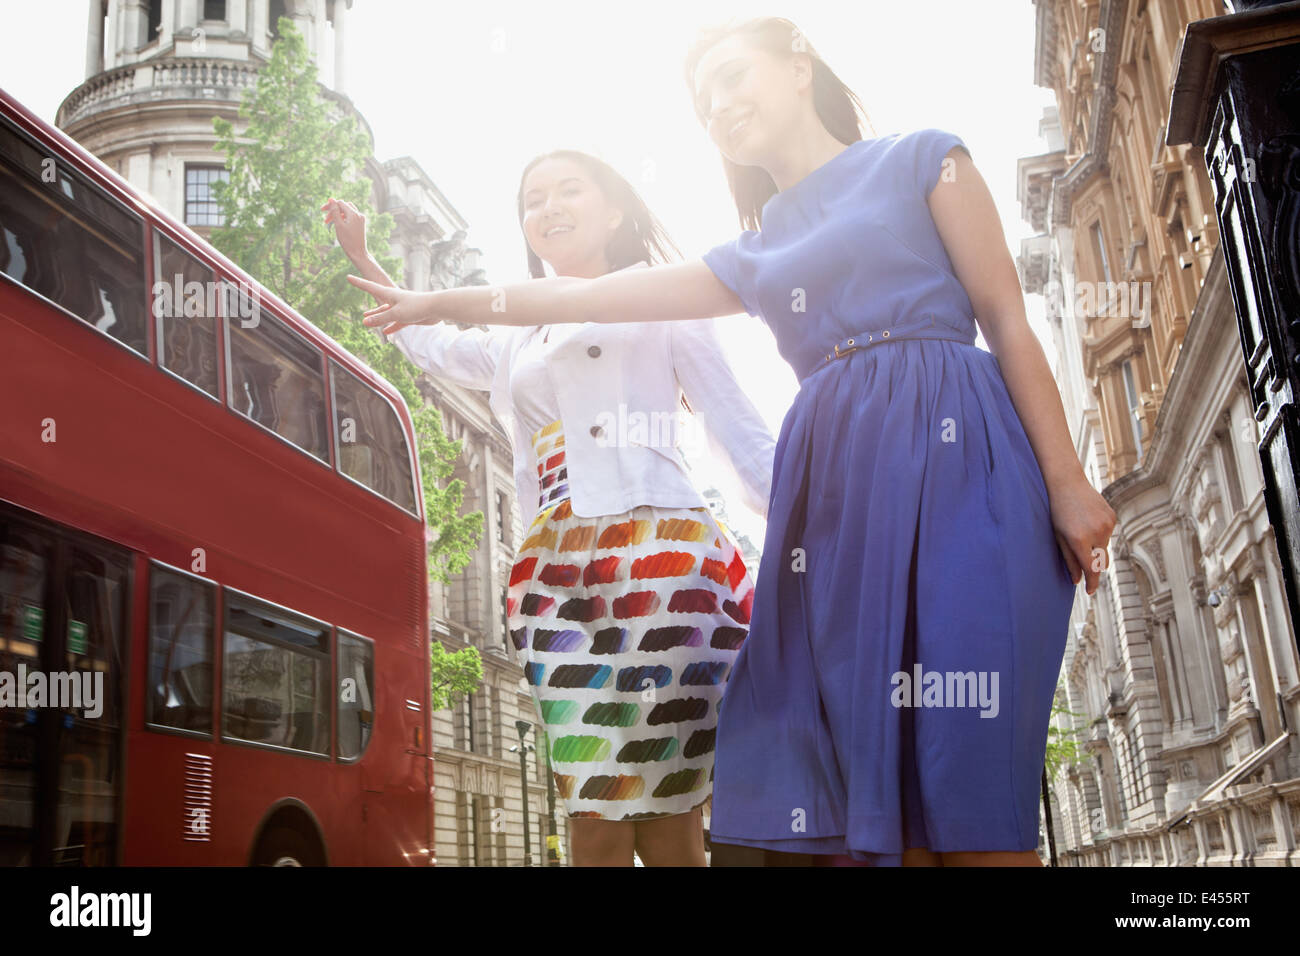 Two young women standing in London street, waving to stop bus - Stock Image